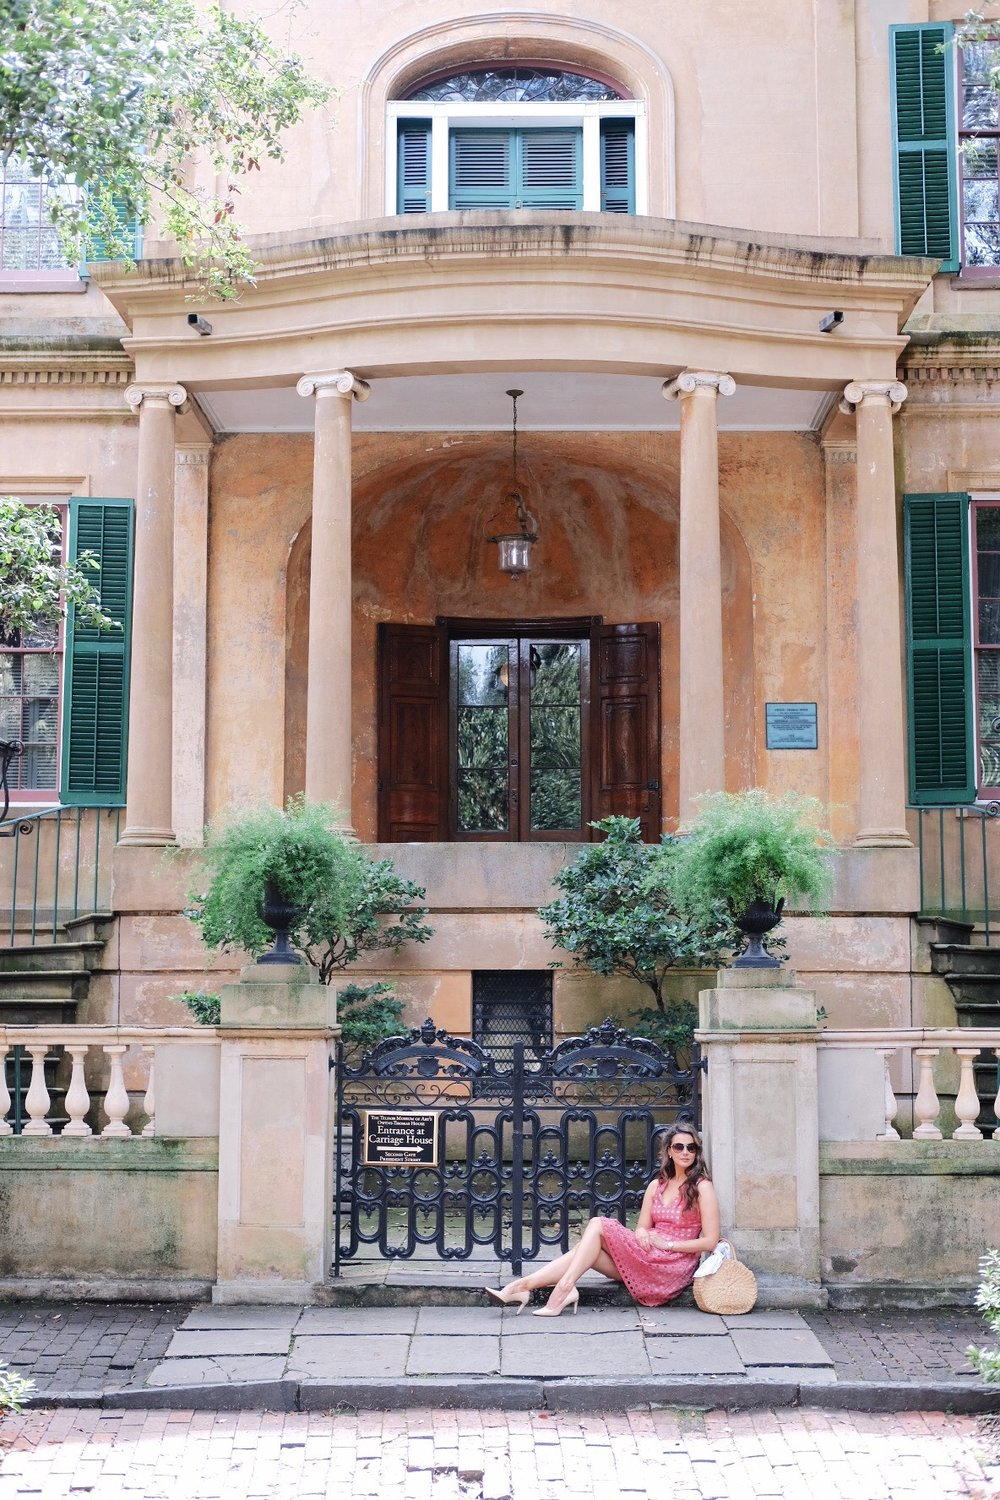 Brenna Michaels in front of the Owens Thomas House in Savannah, Georgia